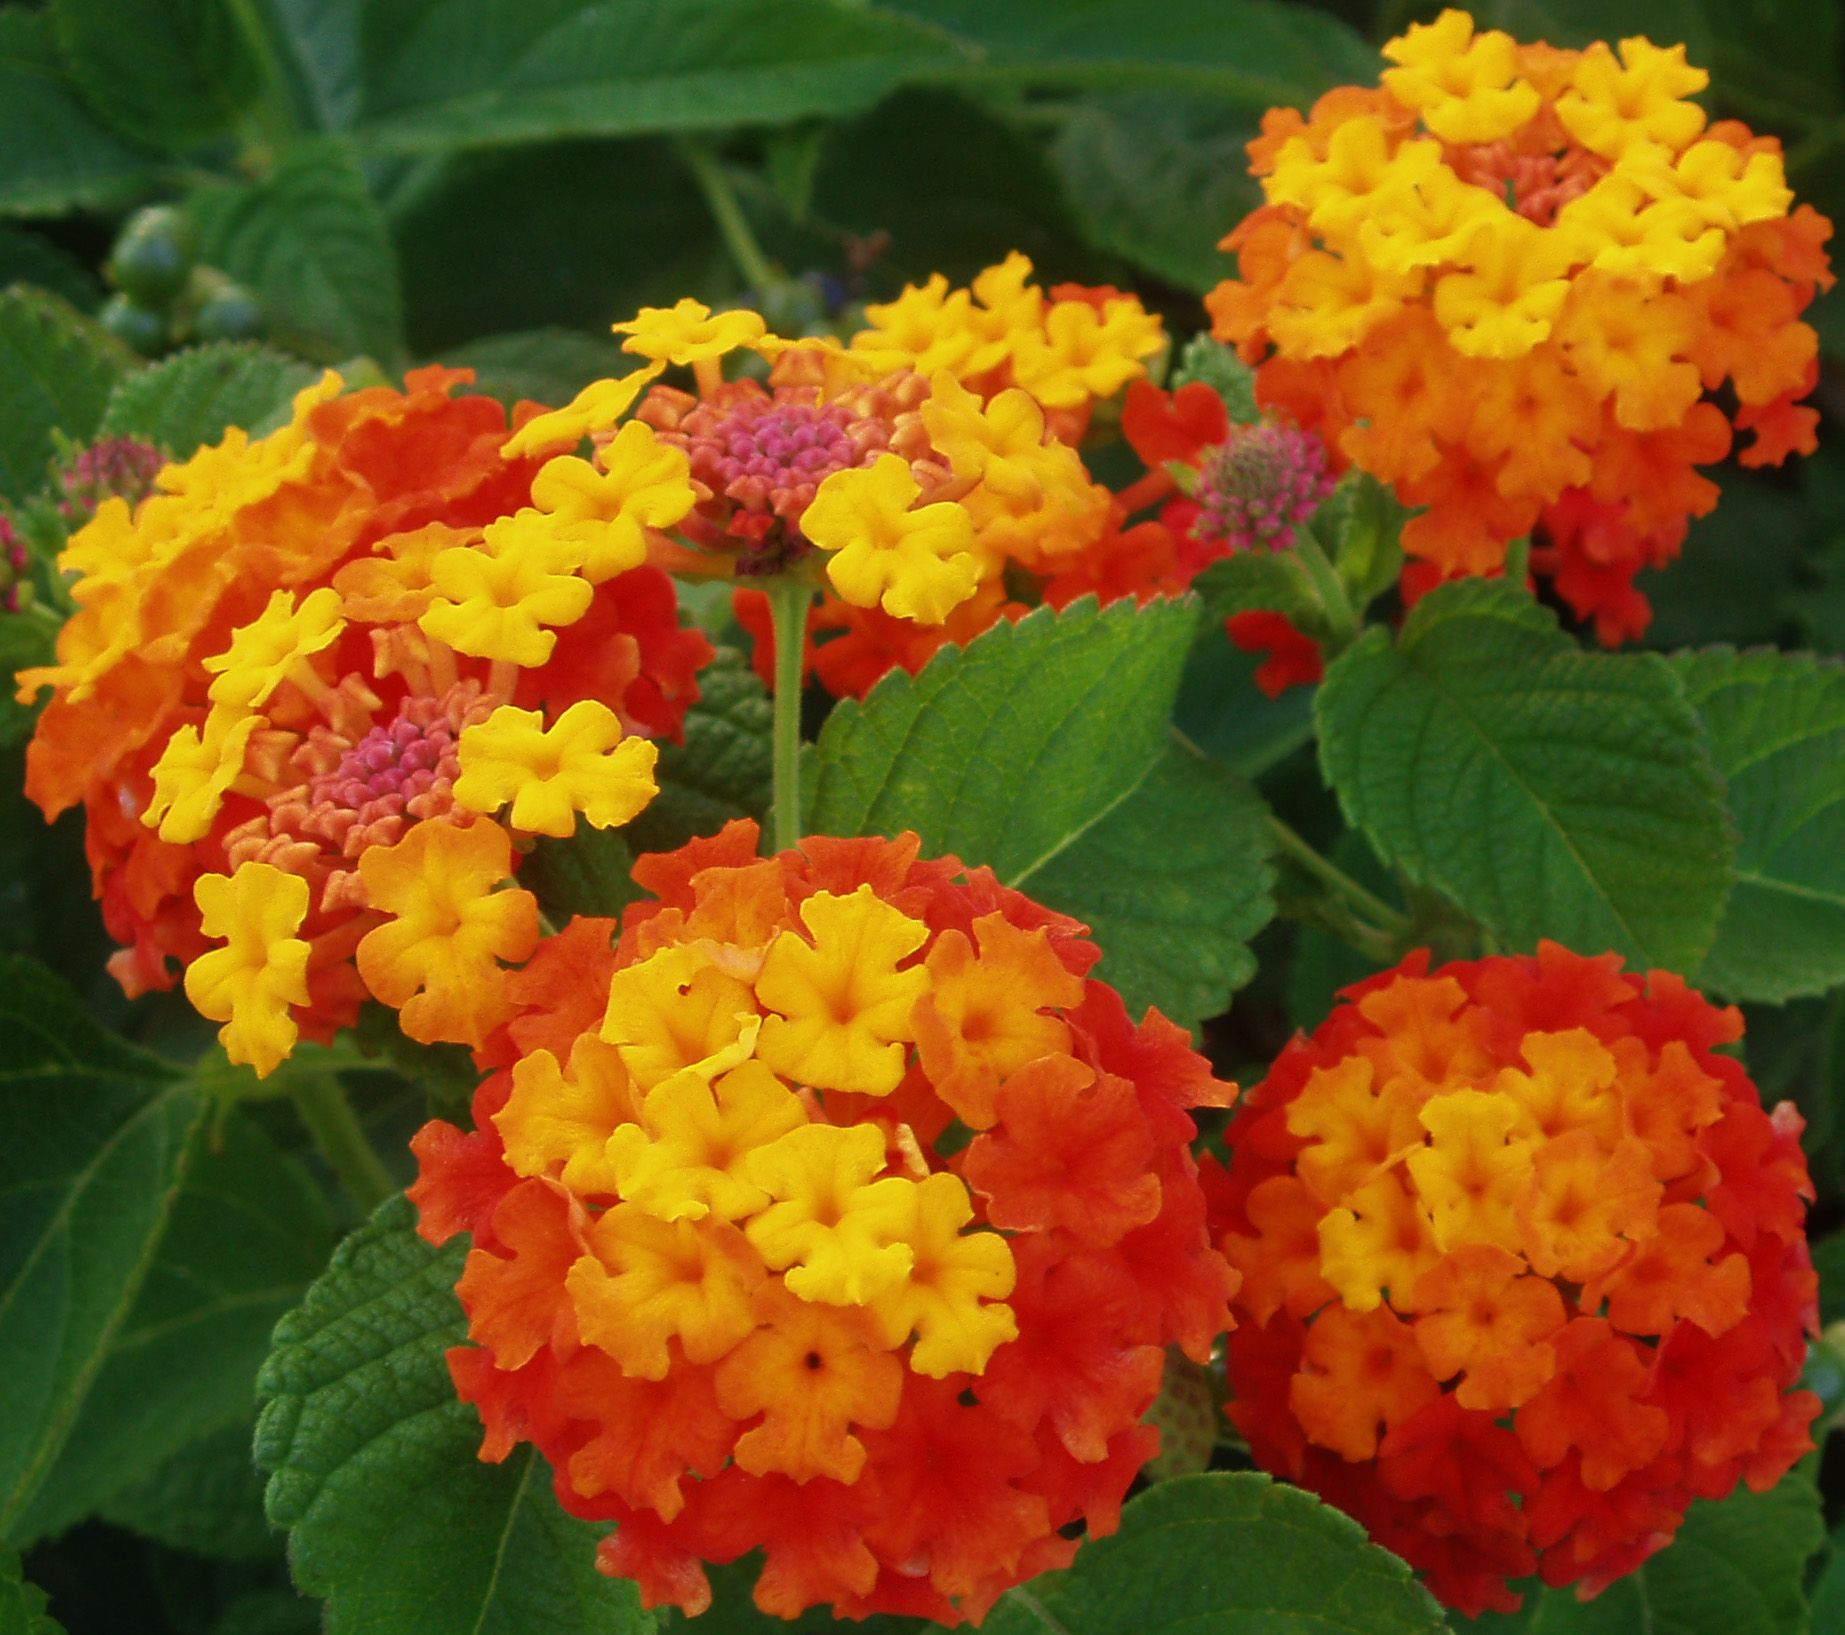 Blooming Plants In The Garden At The Family Tree Garden Center Lantana Plant Drought Tolerant Plants Lantana Camara